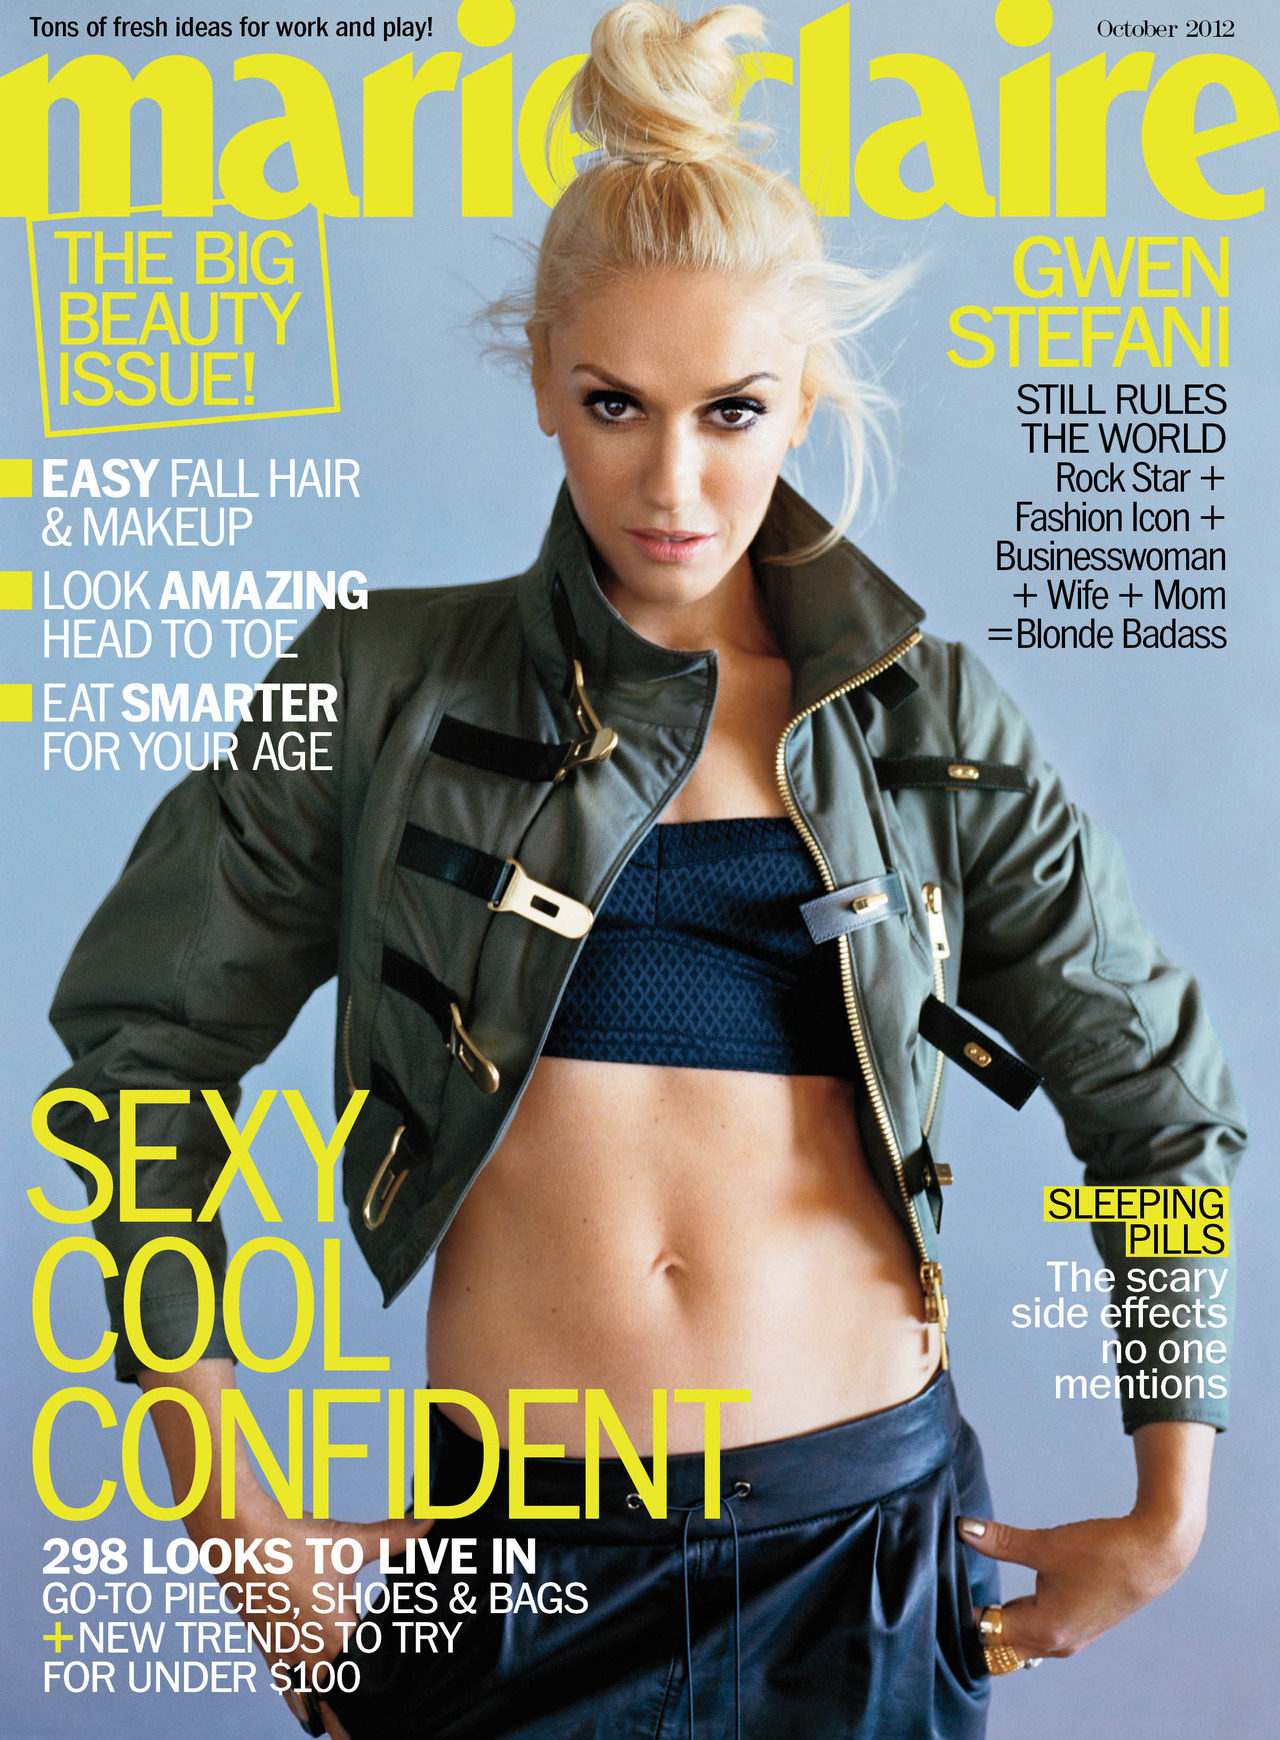 Please say hello to our new covergirl: Gwen Stefani!